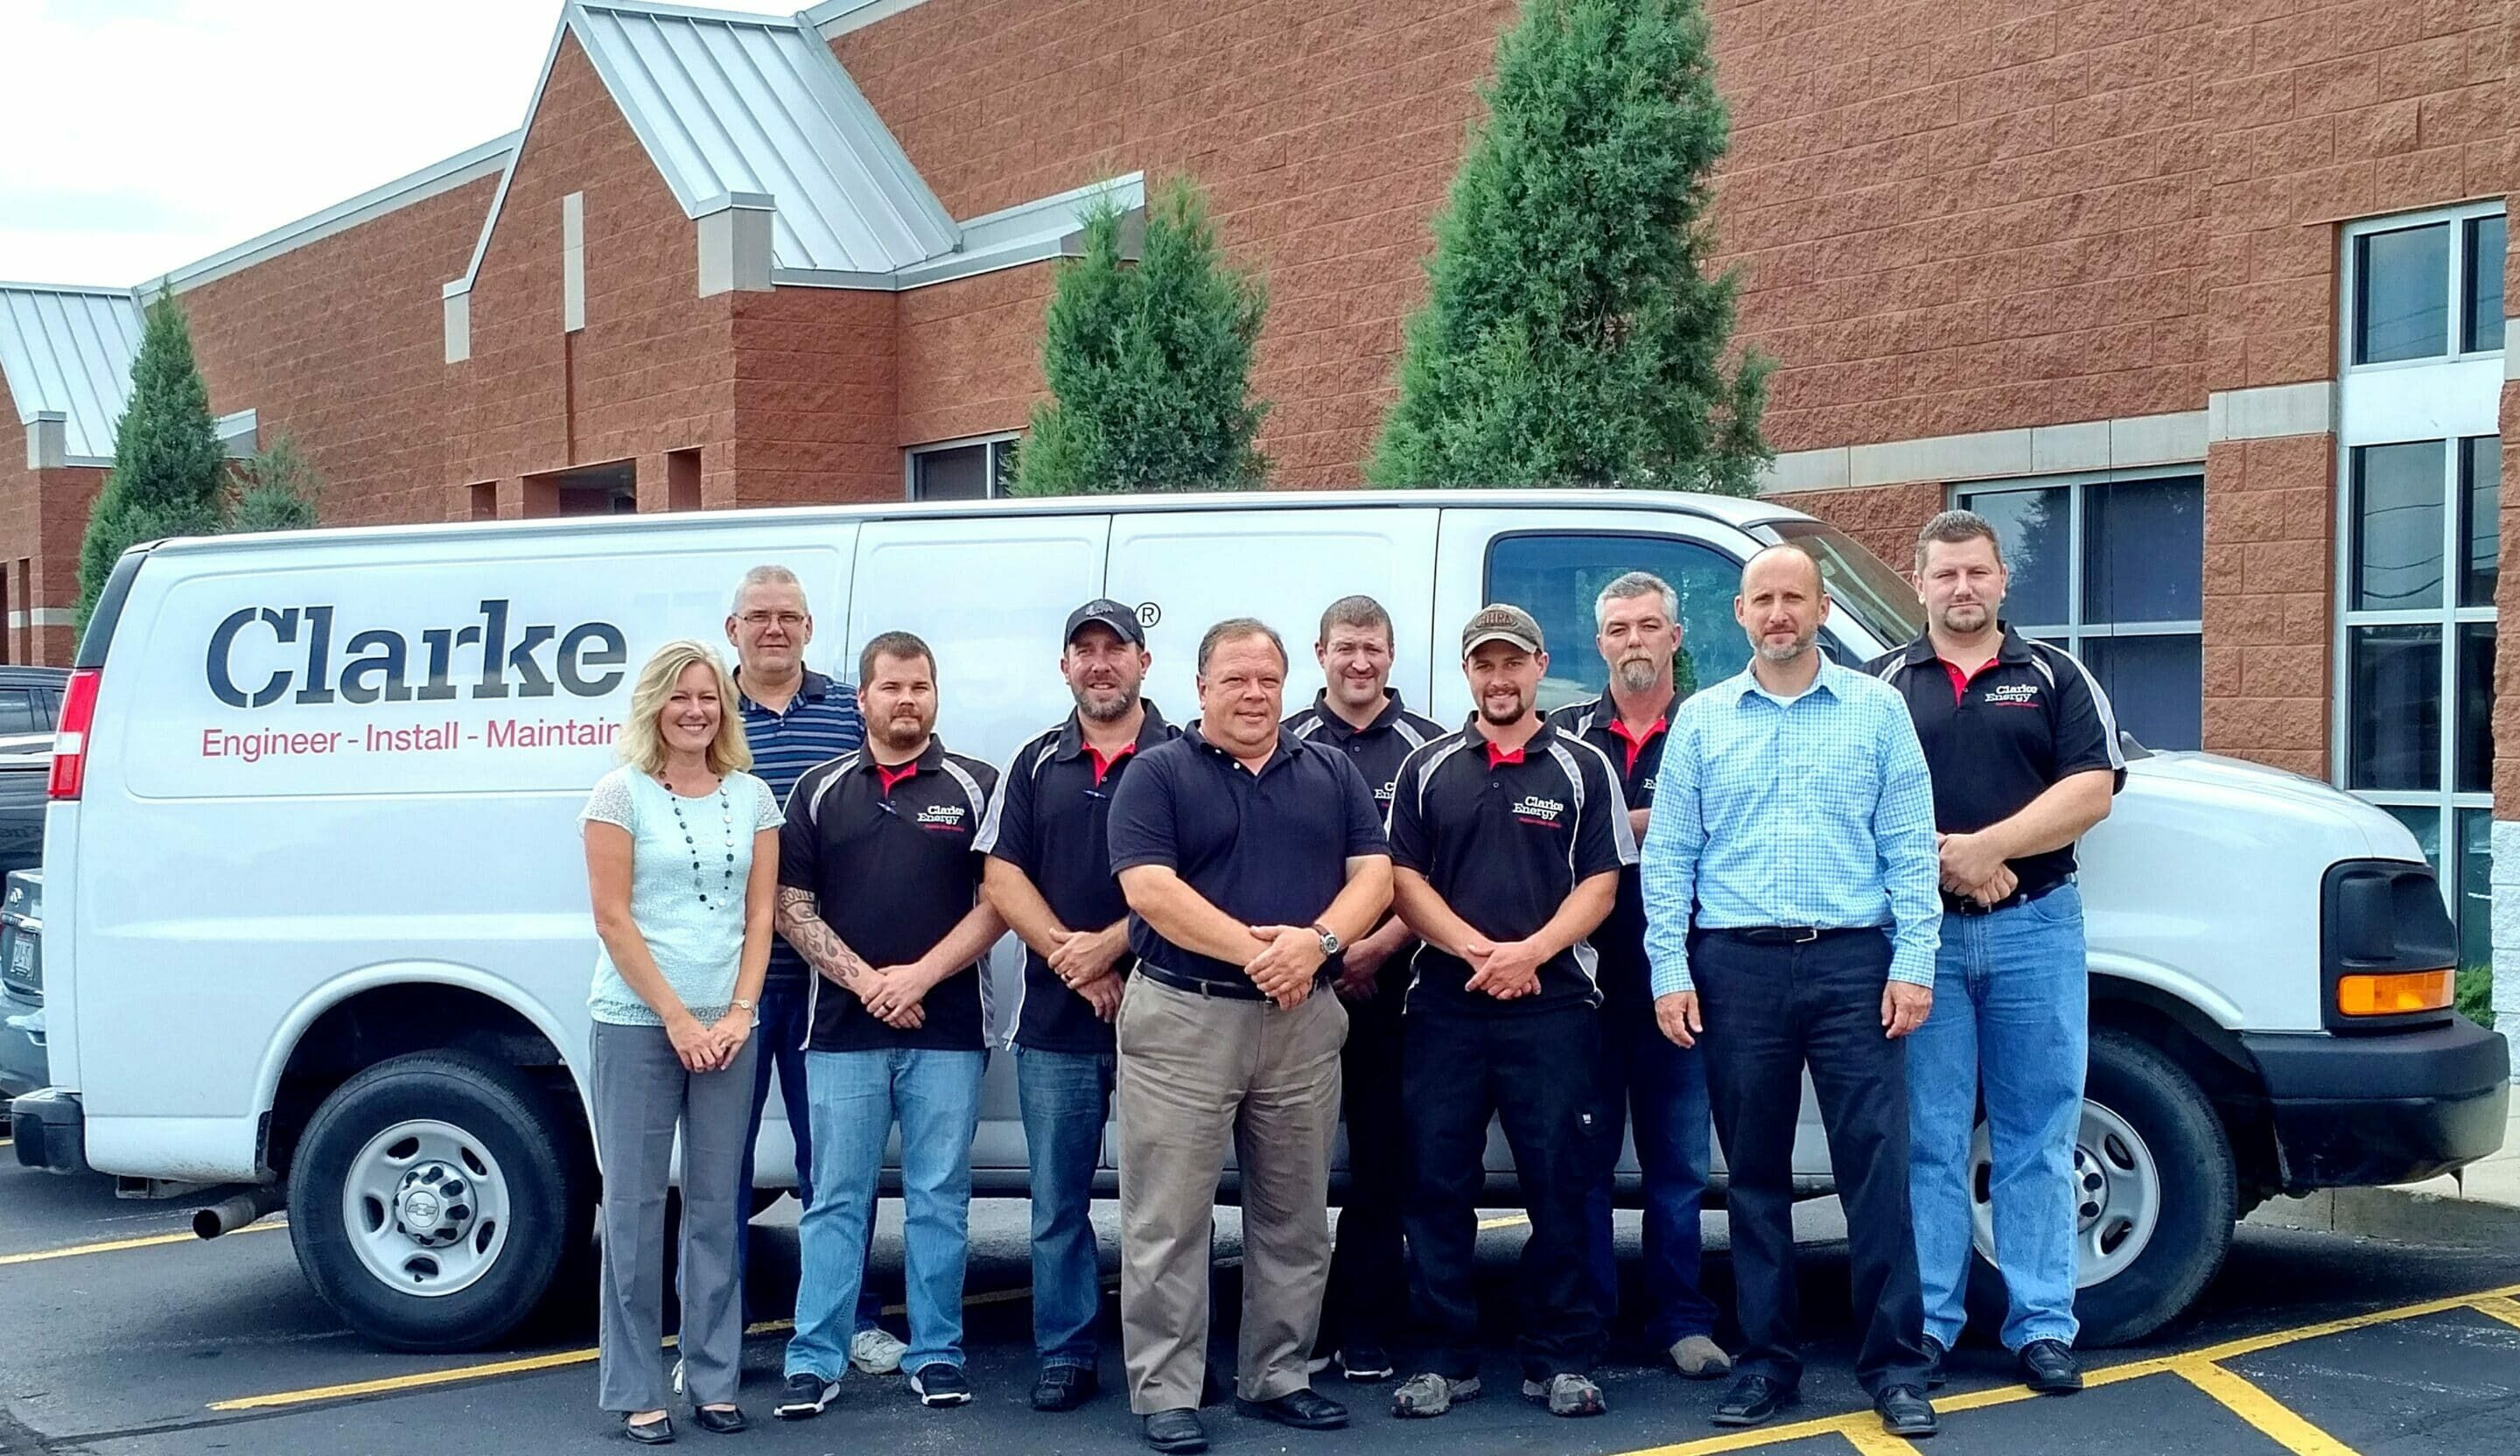 A photograph of the new members of Clarke Energy's US operations and a Clarke Energy service van